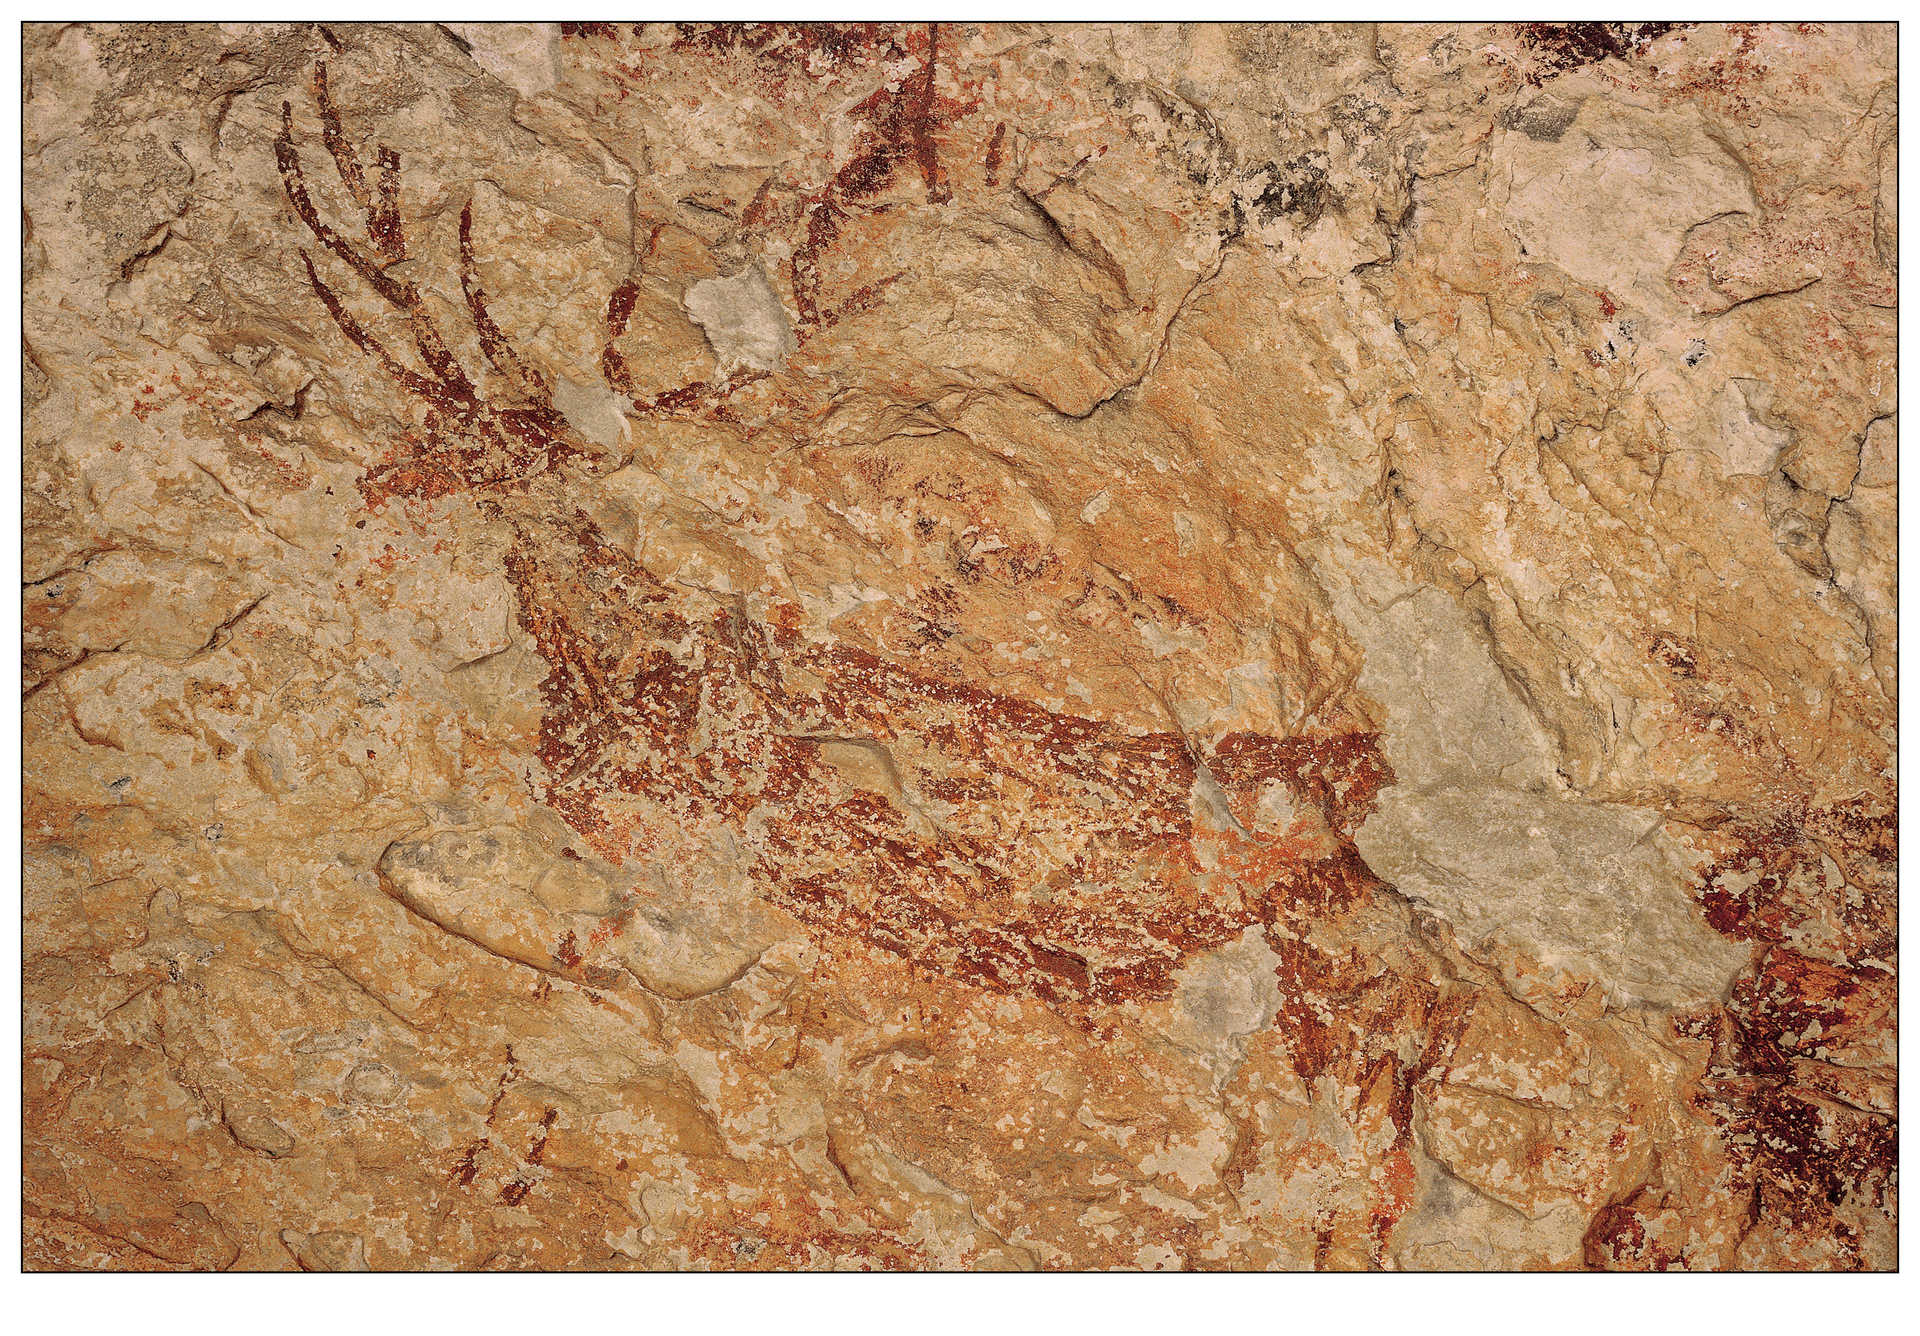 Guided tours of the cave paintings of La Sarga